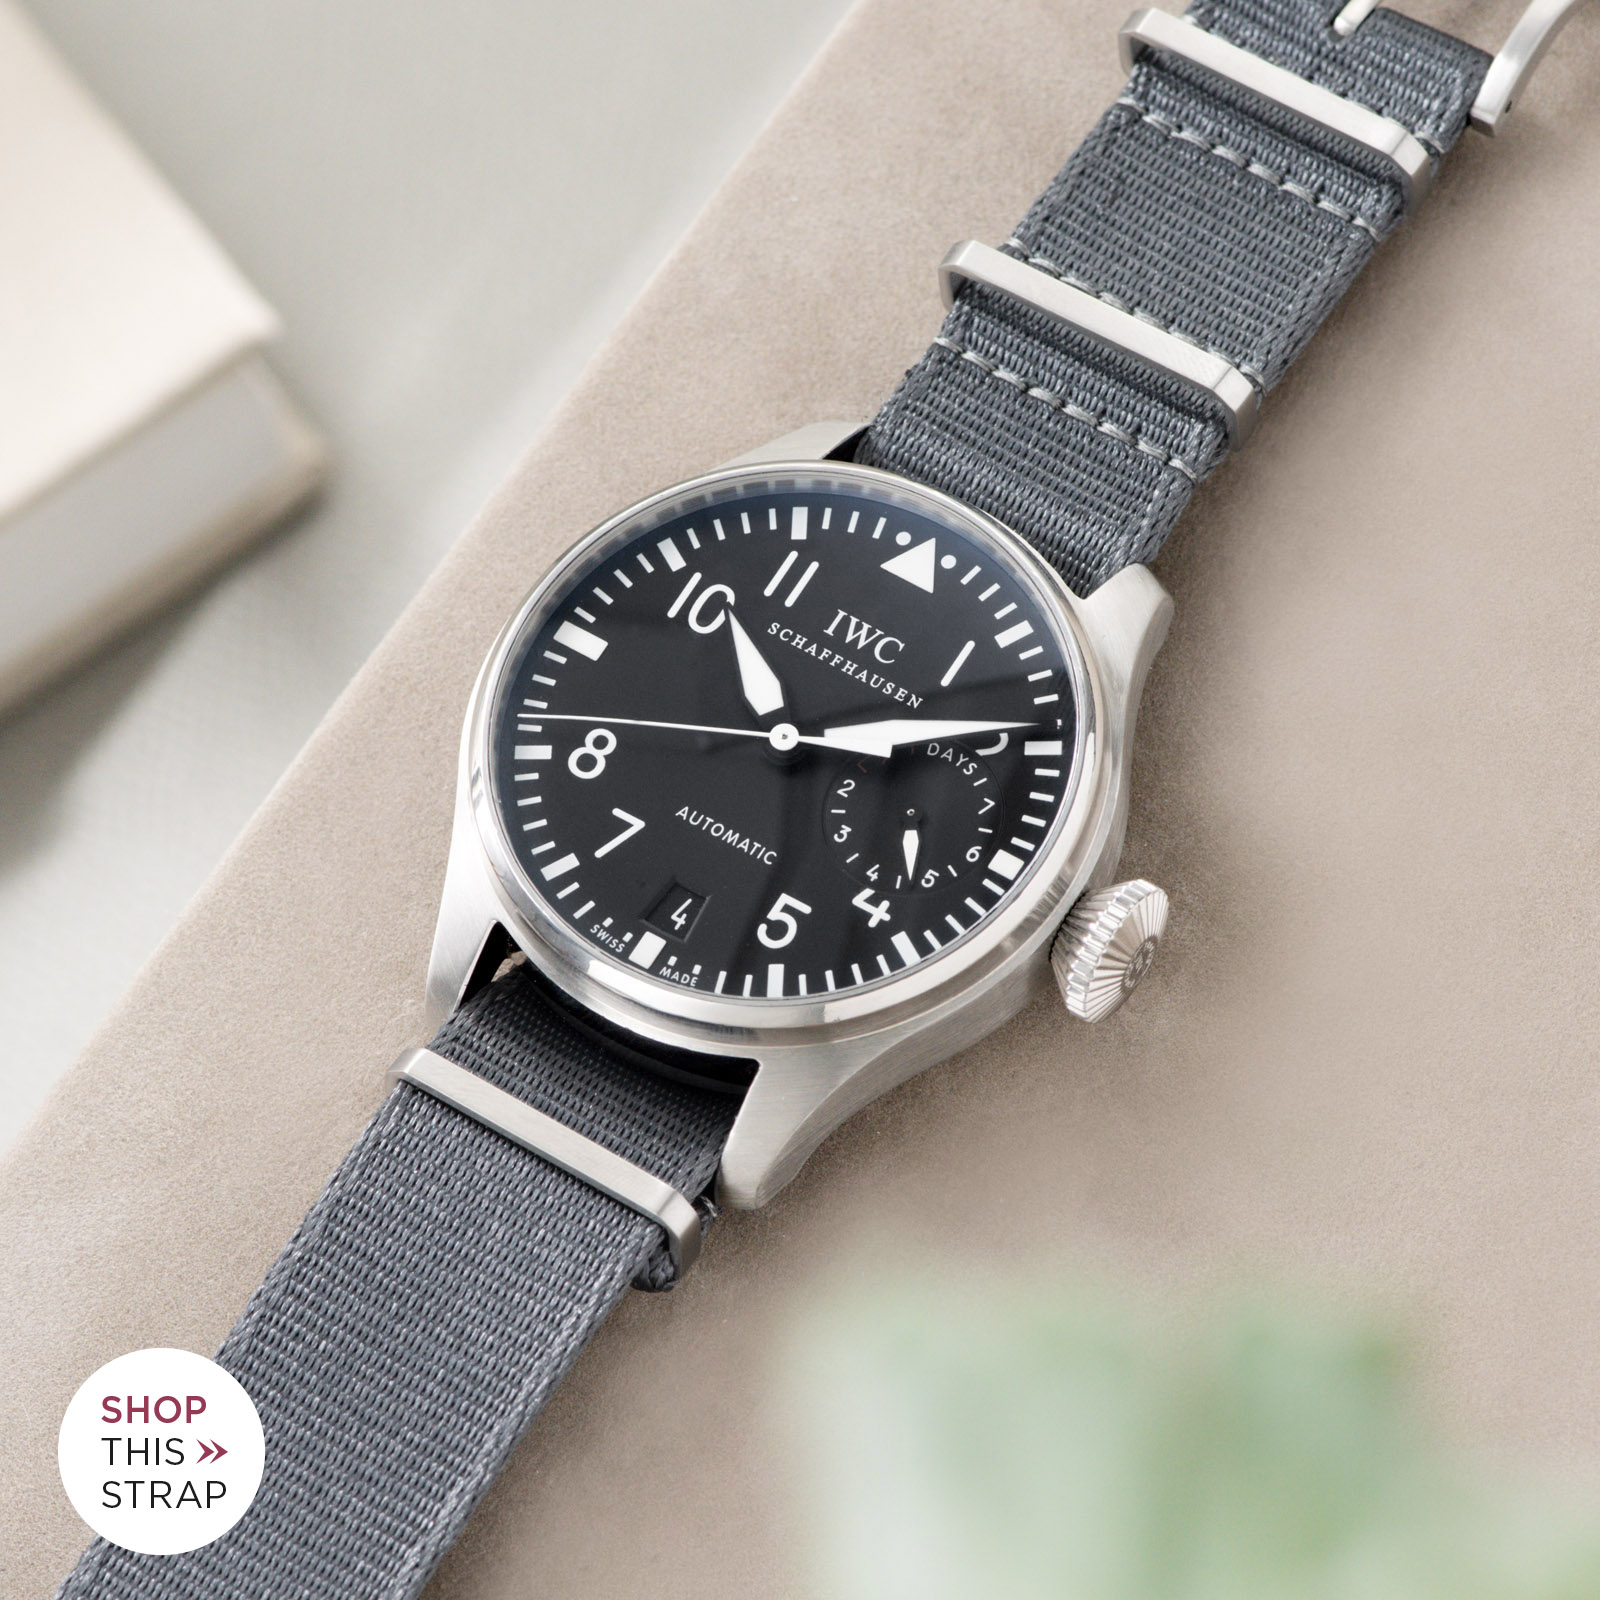 Bulang and Sons_Strap Guide_IWC Big Pilot ref IW5004_Deluxe Nylon Nato Watch Strap Pure Grey